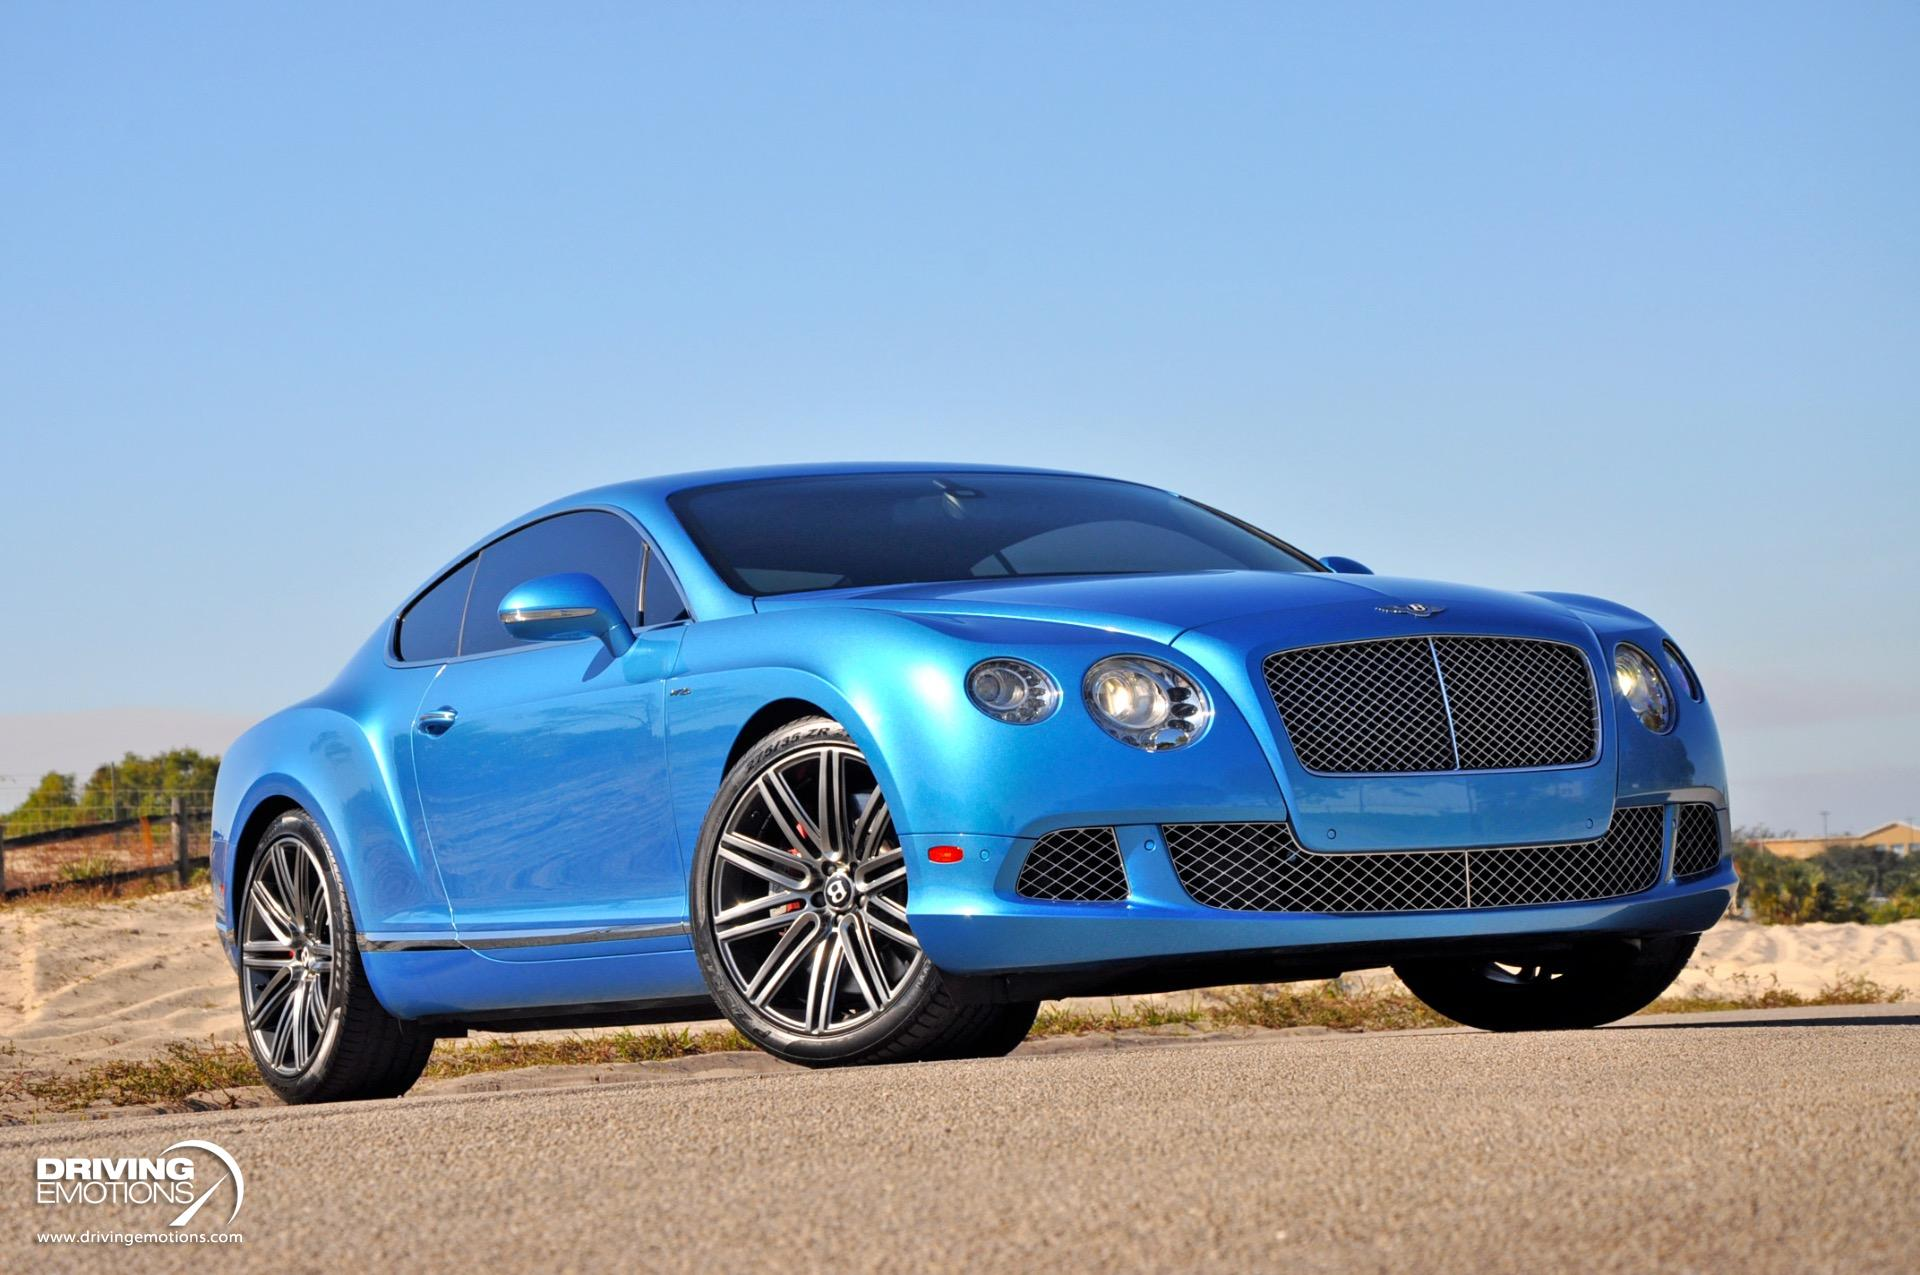 Used 2014 Bentley Continental GT Speed Speed Coupe $248k MSRP!! Kingfisher Blue!!   Lake Park, FL